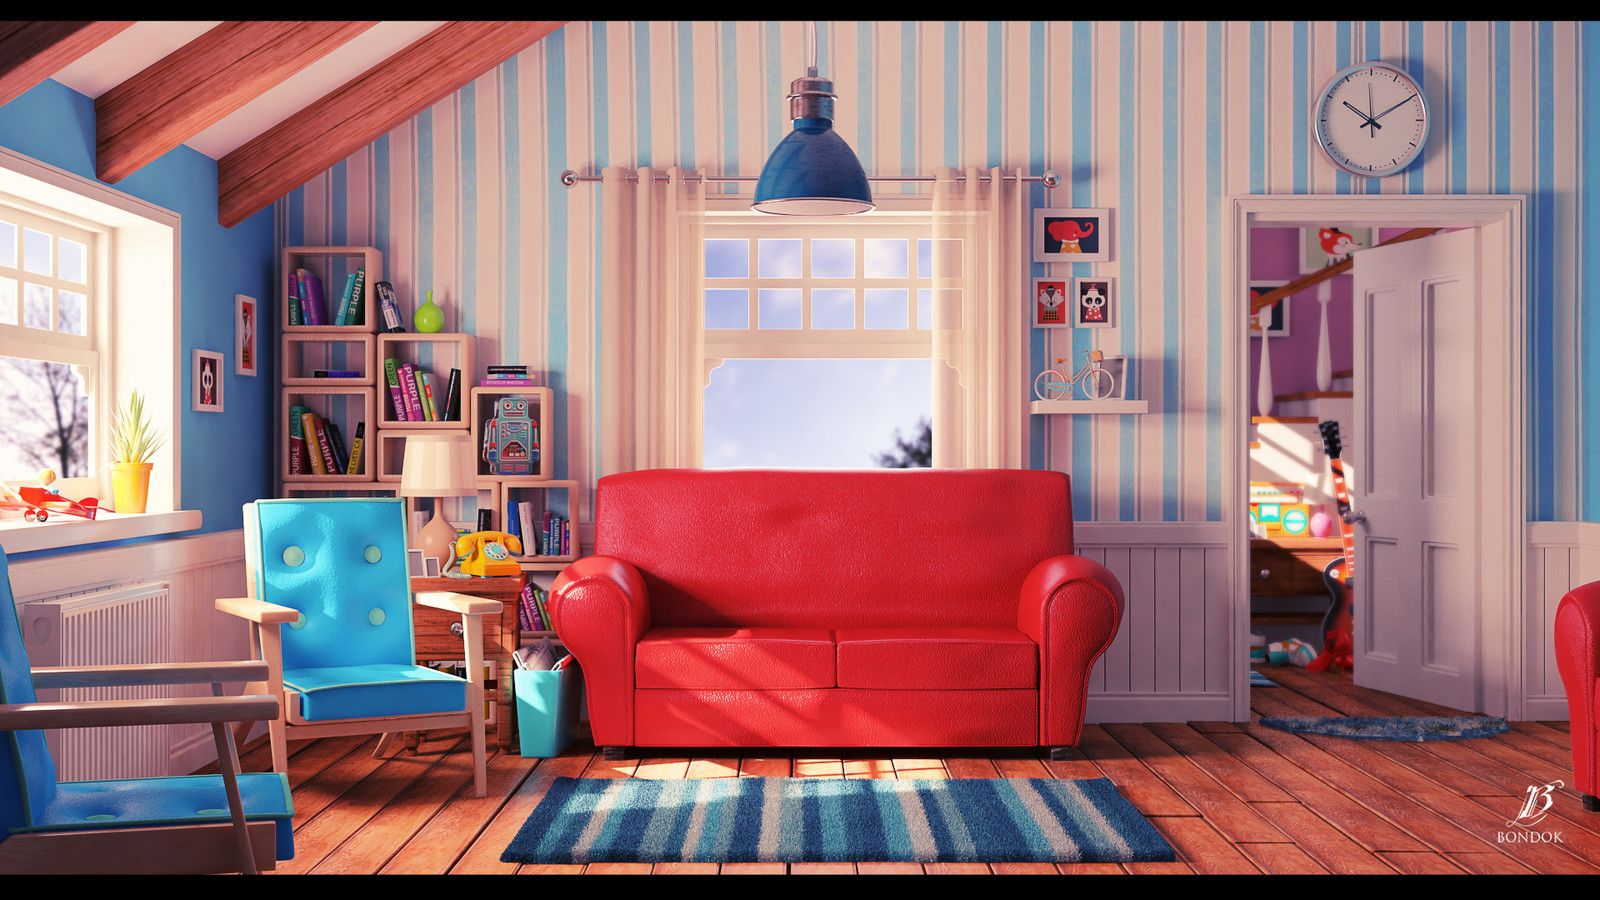 Cartoon living room, bondok max on ArtStation at https